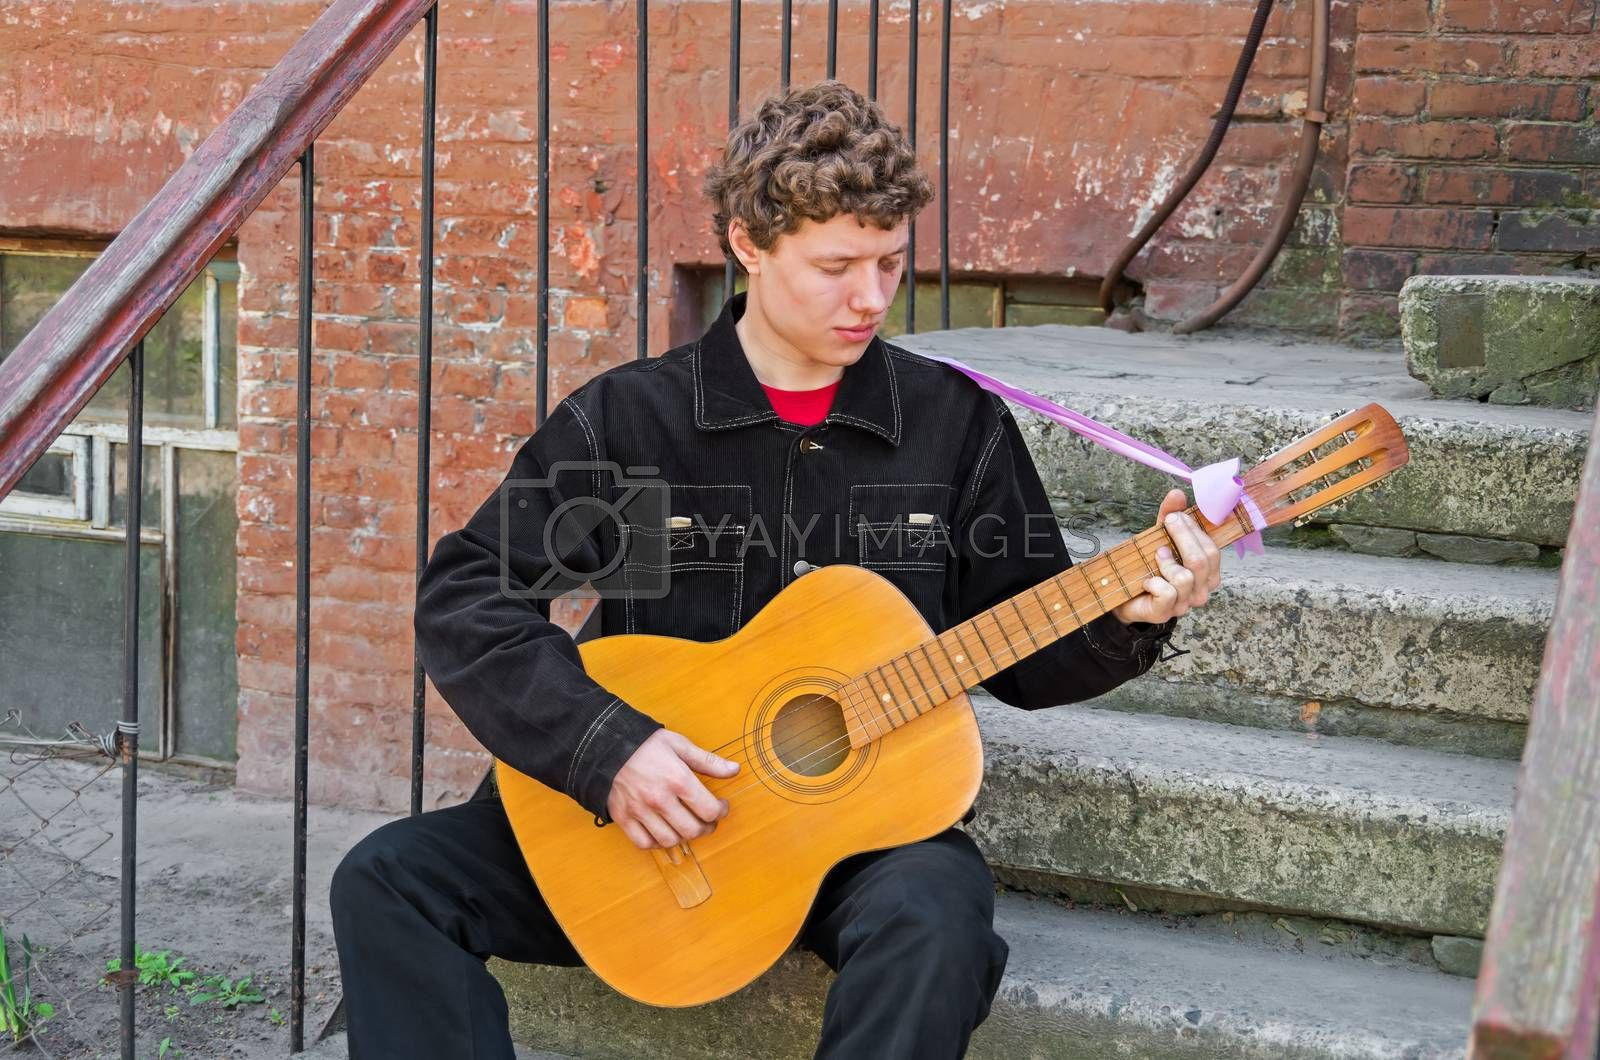 Guitarist playing his guitar of classical musical instrument on the street.